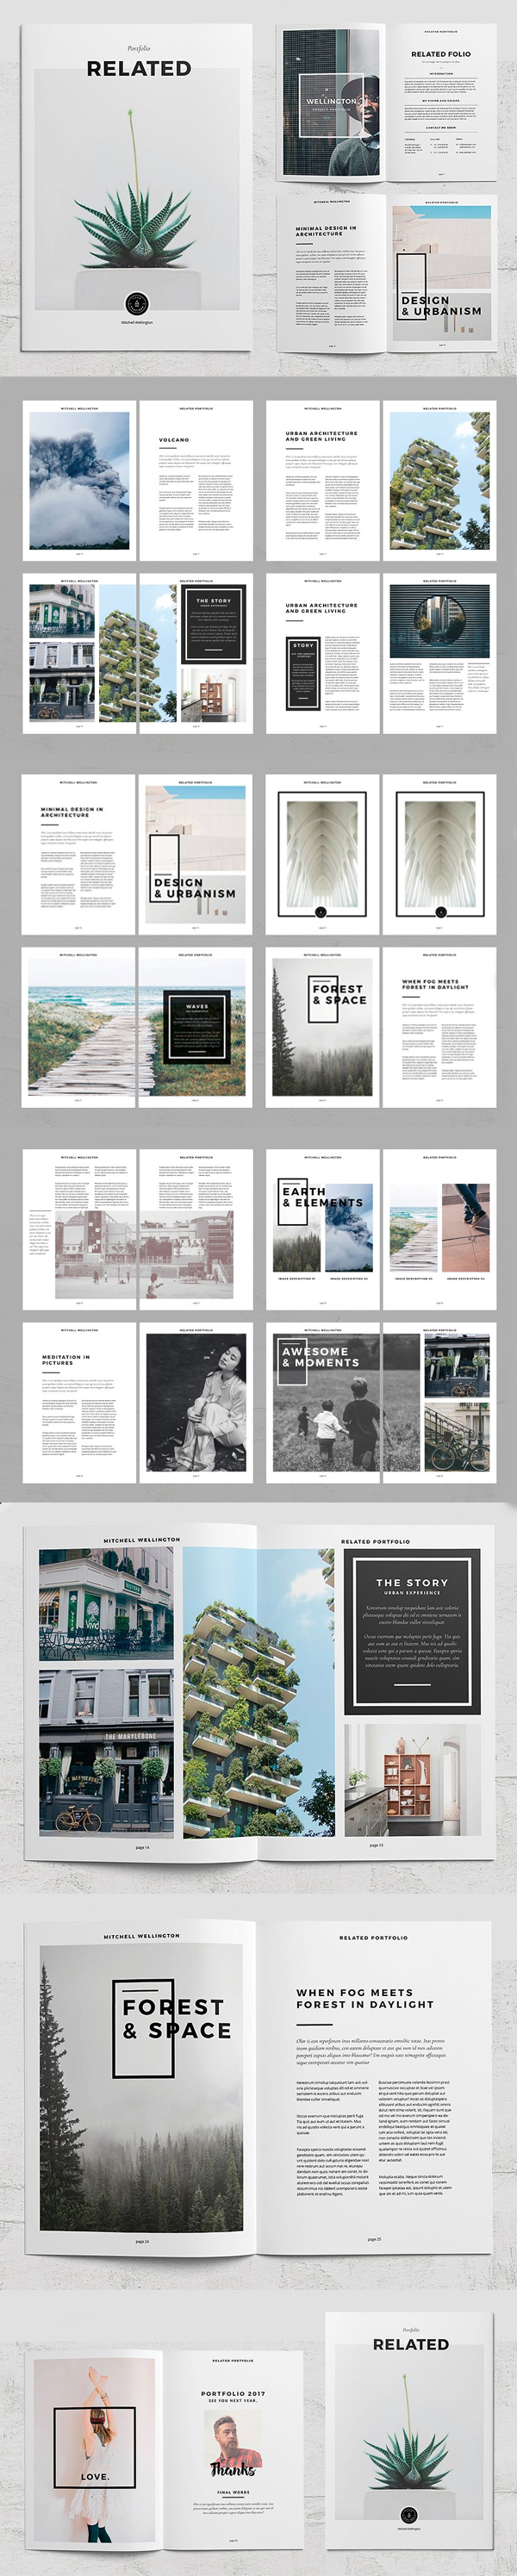 Relevant Photography Portfolio Template